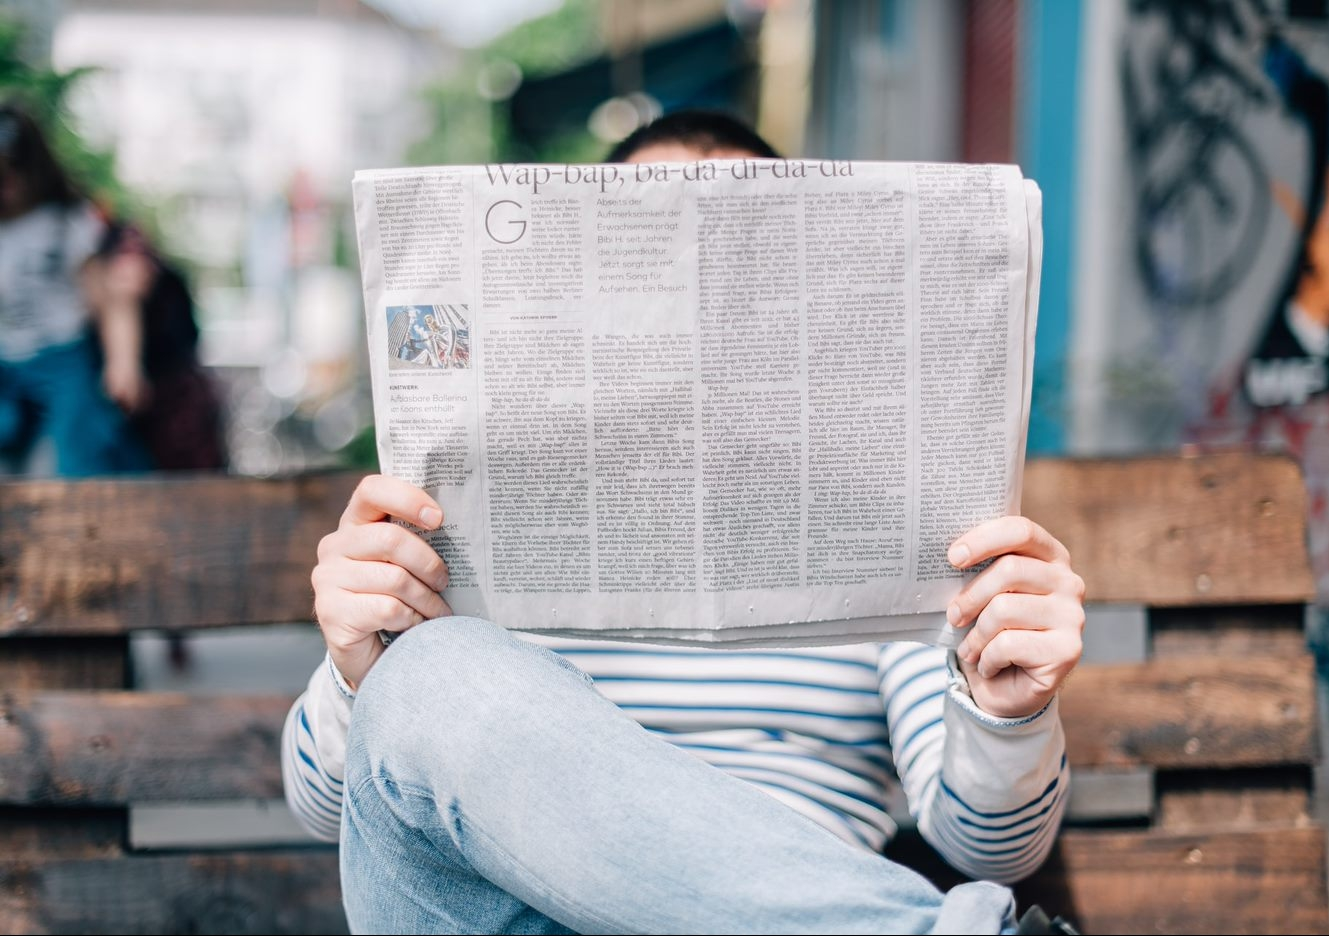 Australian law does not currently provide clear protection of press freedom. Photo: Unsplash.